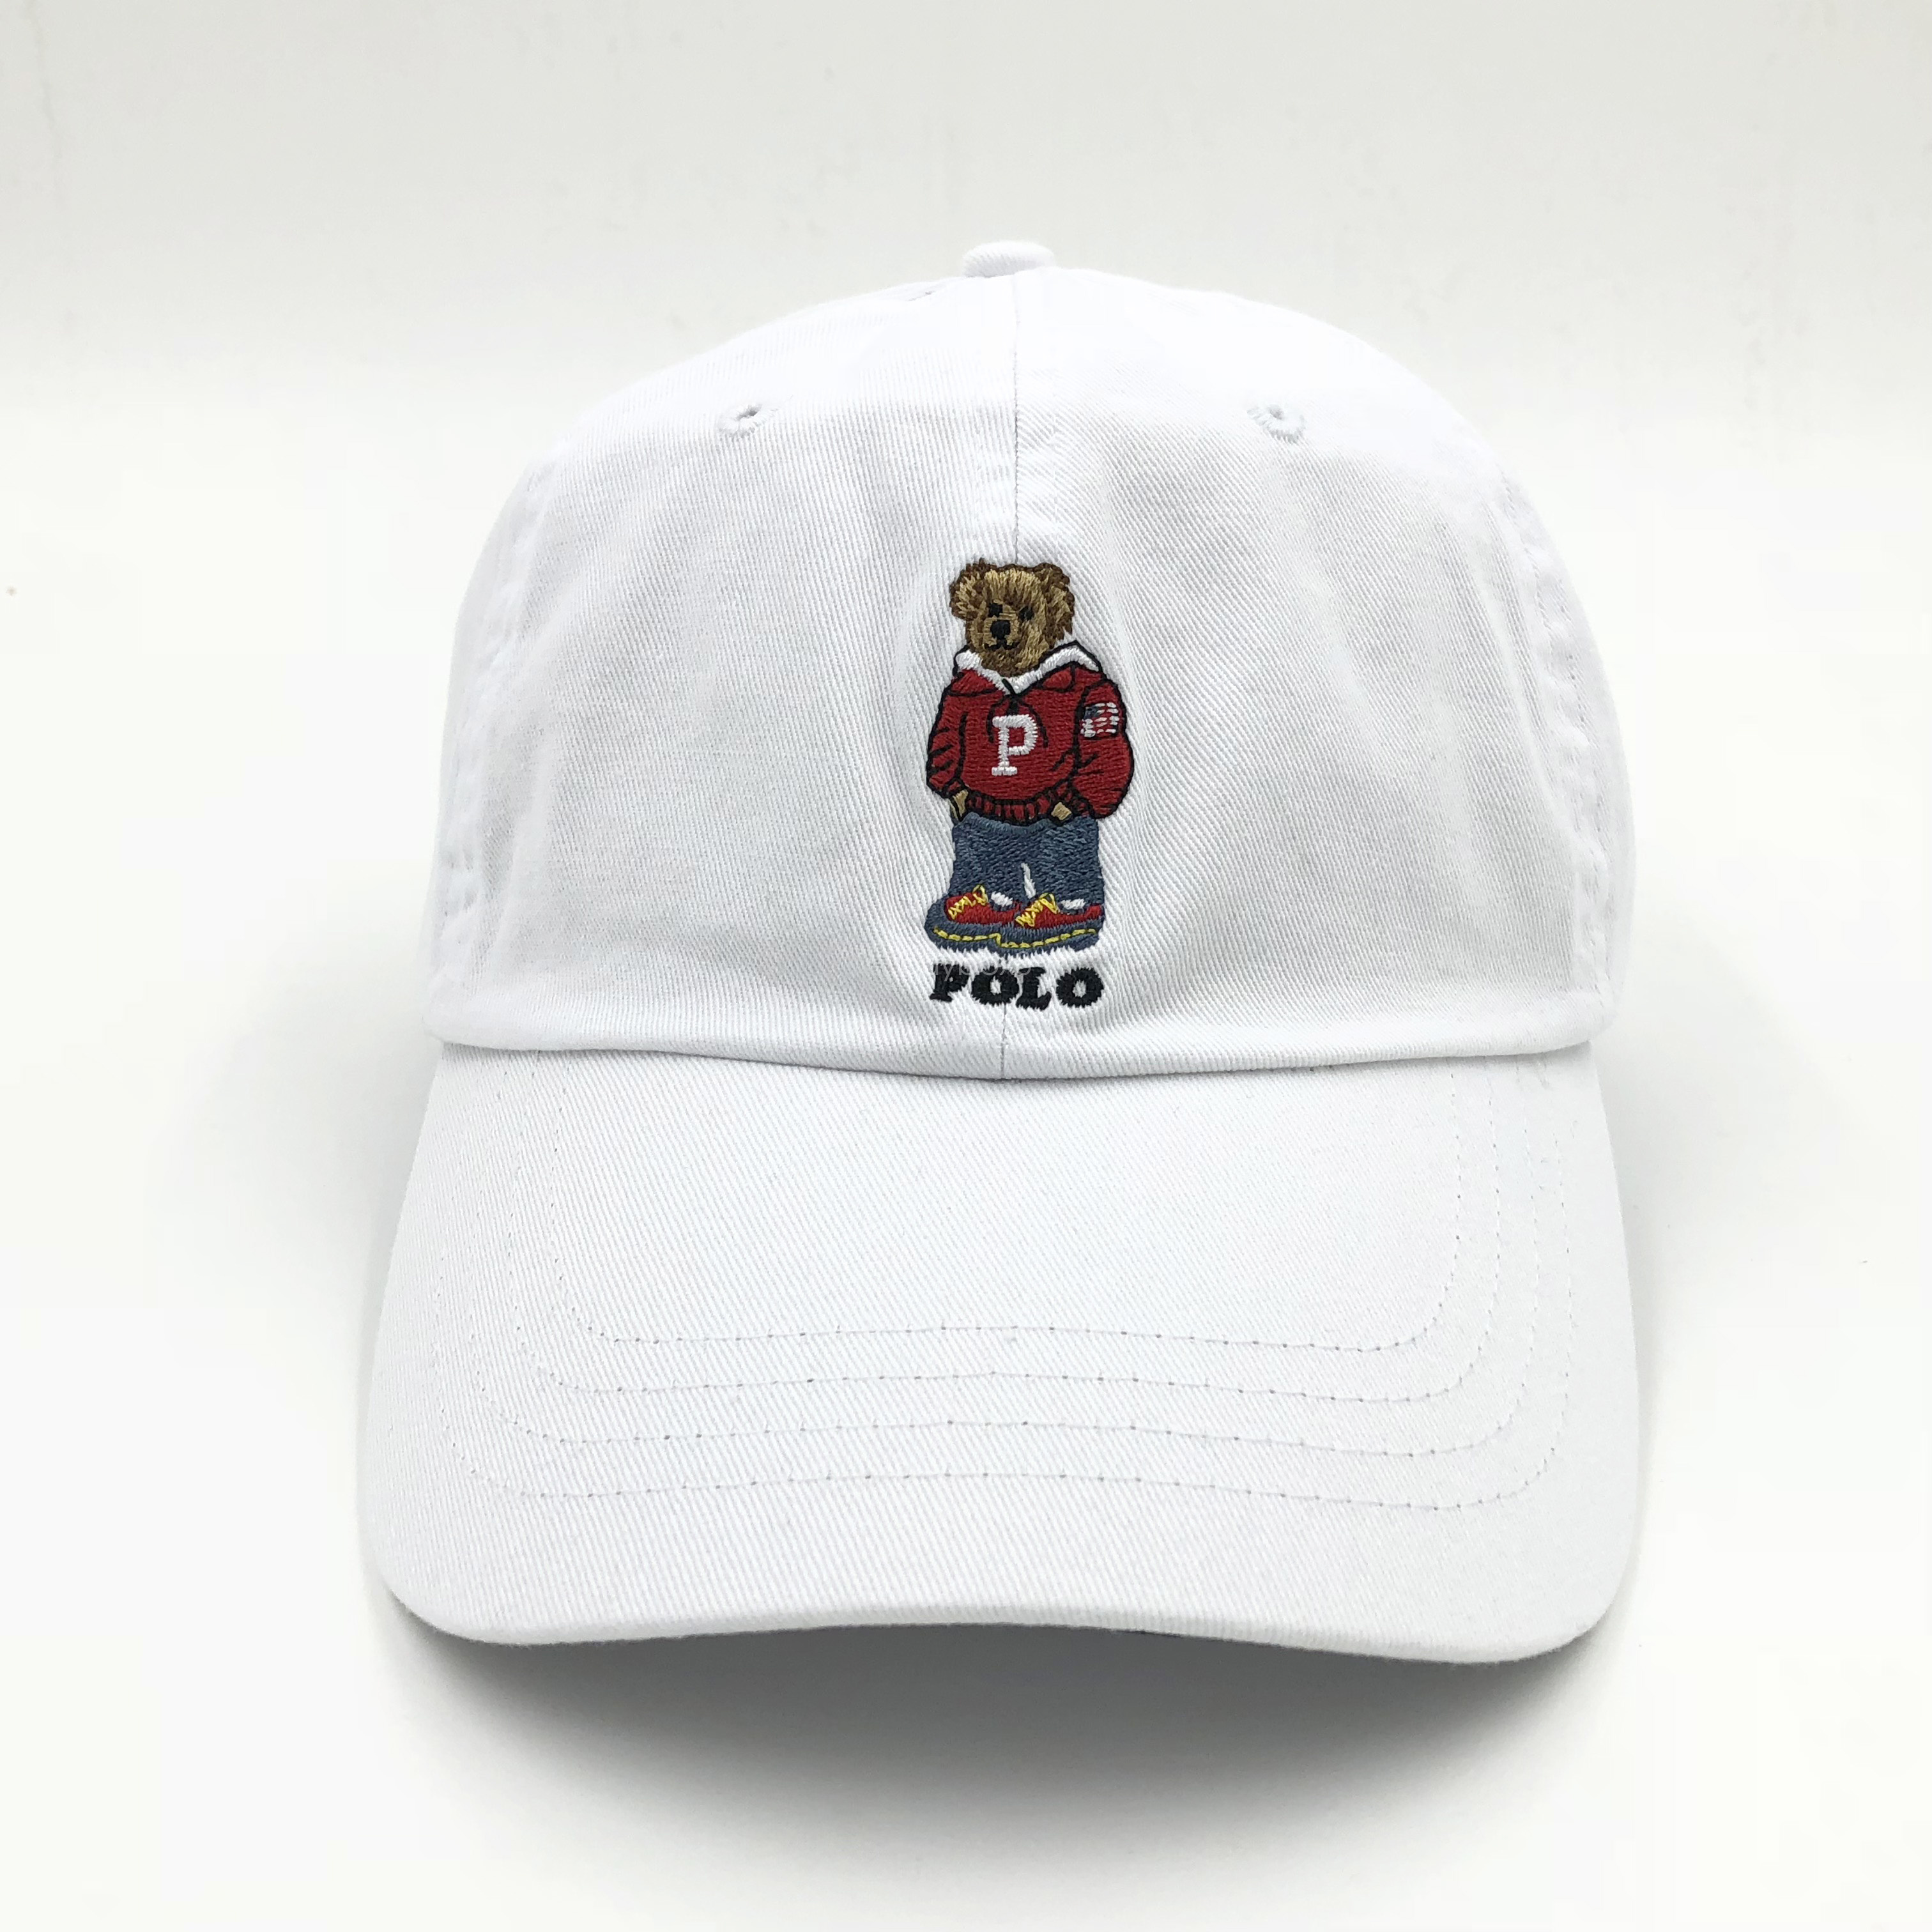 Details about POLO Baseball Cap Embroideried Red Bear Golf Outdoor Hats  Tennis Hat Leisure New cd030fc8130